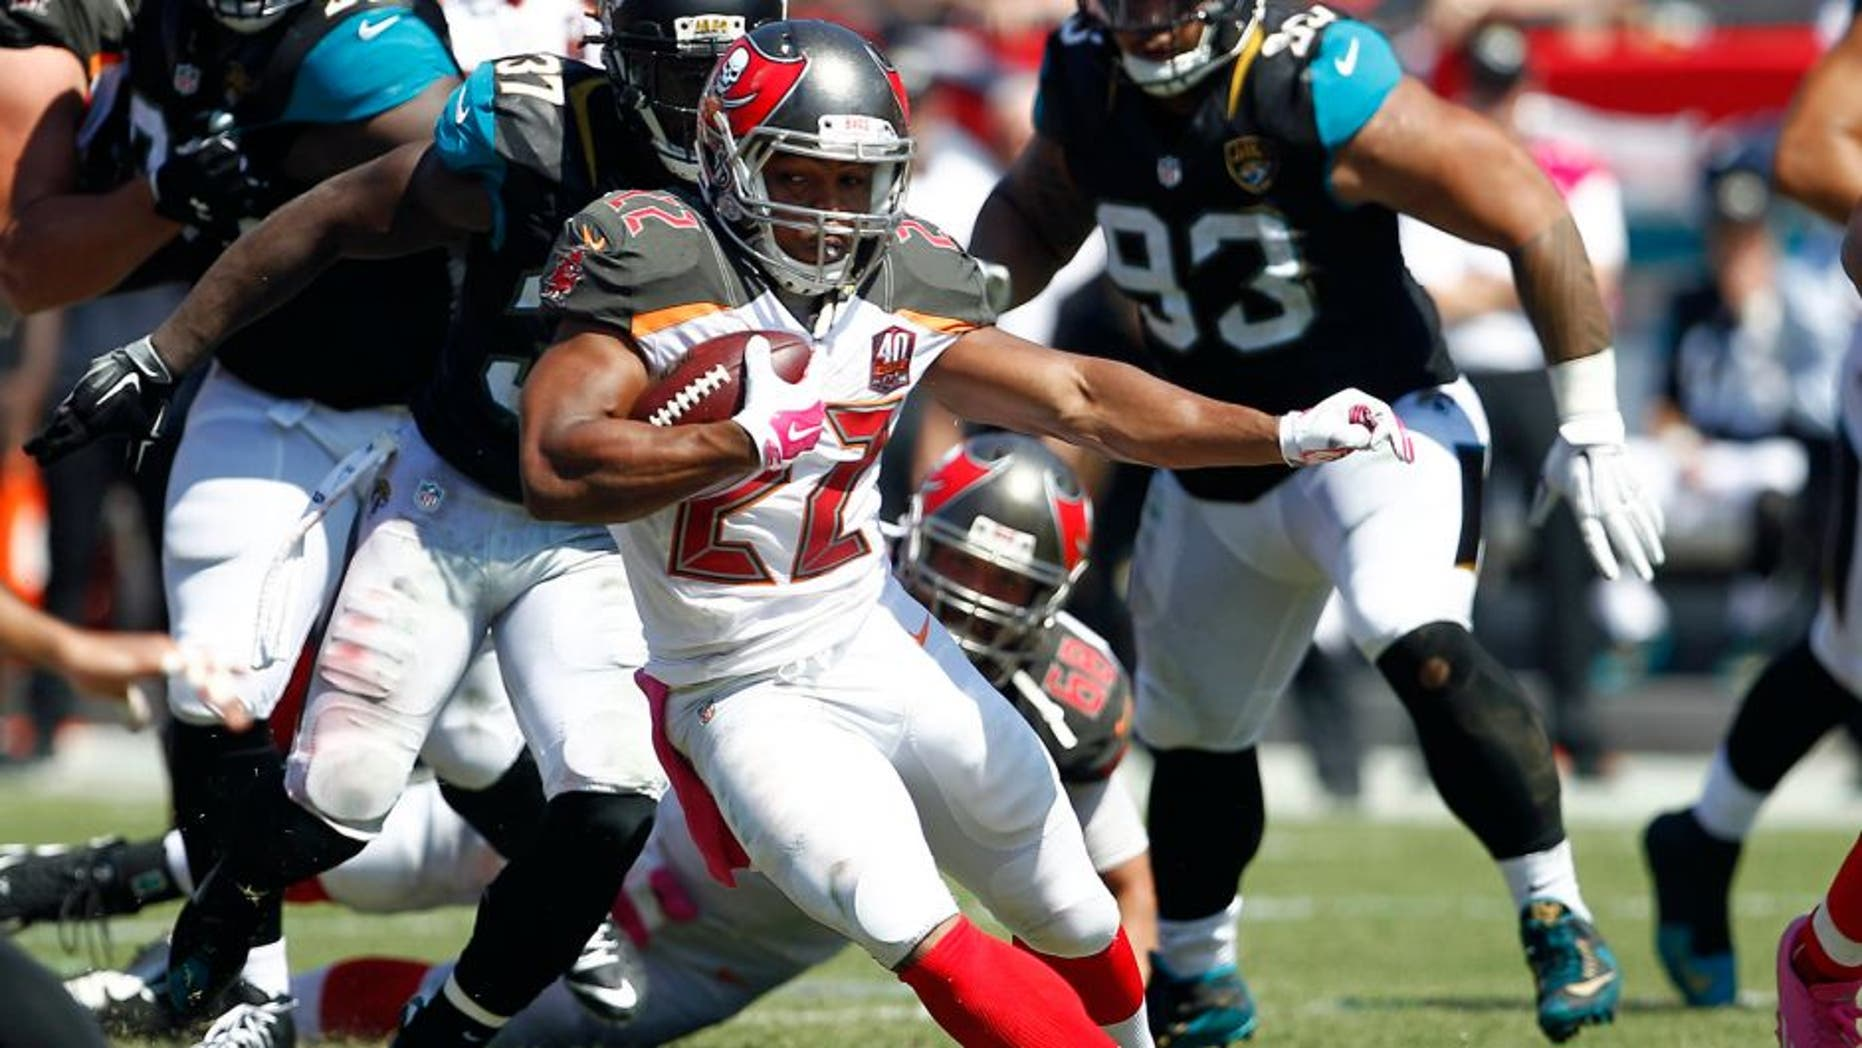 Oct 11, 2015; Tampa, FL, USA; Tampa Bay Buccaneers running back Doug Martin (22) runs for a first down during past Jacksonville Jaguars strong safety Johnathan Cyprien (37) the second quarter of an NFL football game at Raymond James Stadium. Mandatory Credit: Reinhold Matay-USA TODAY Sports